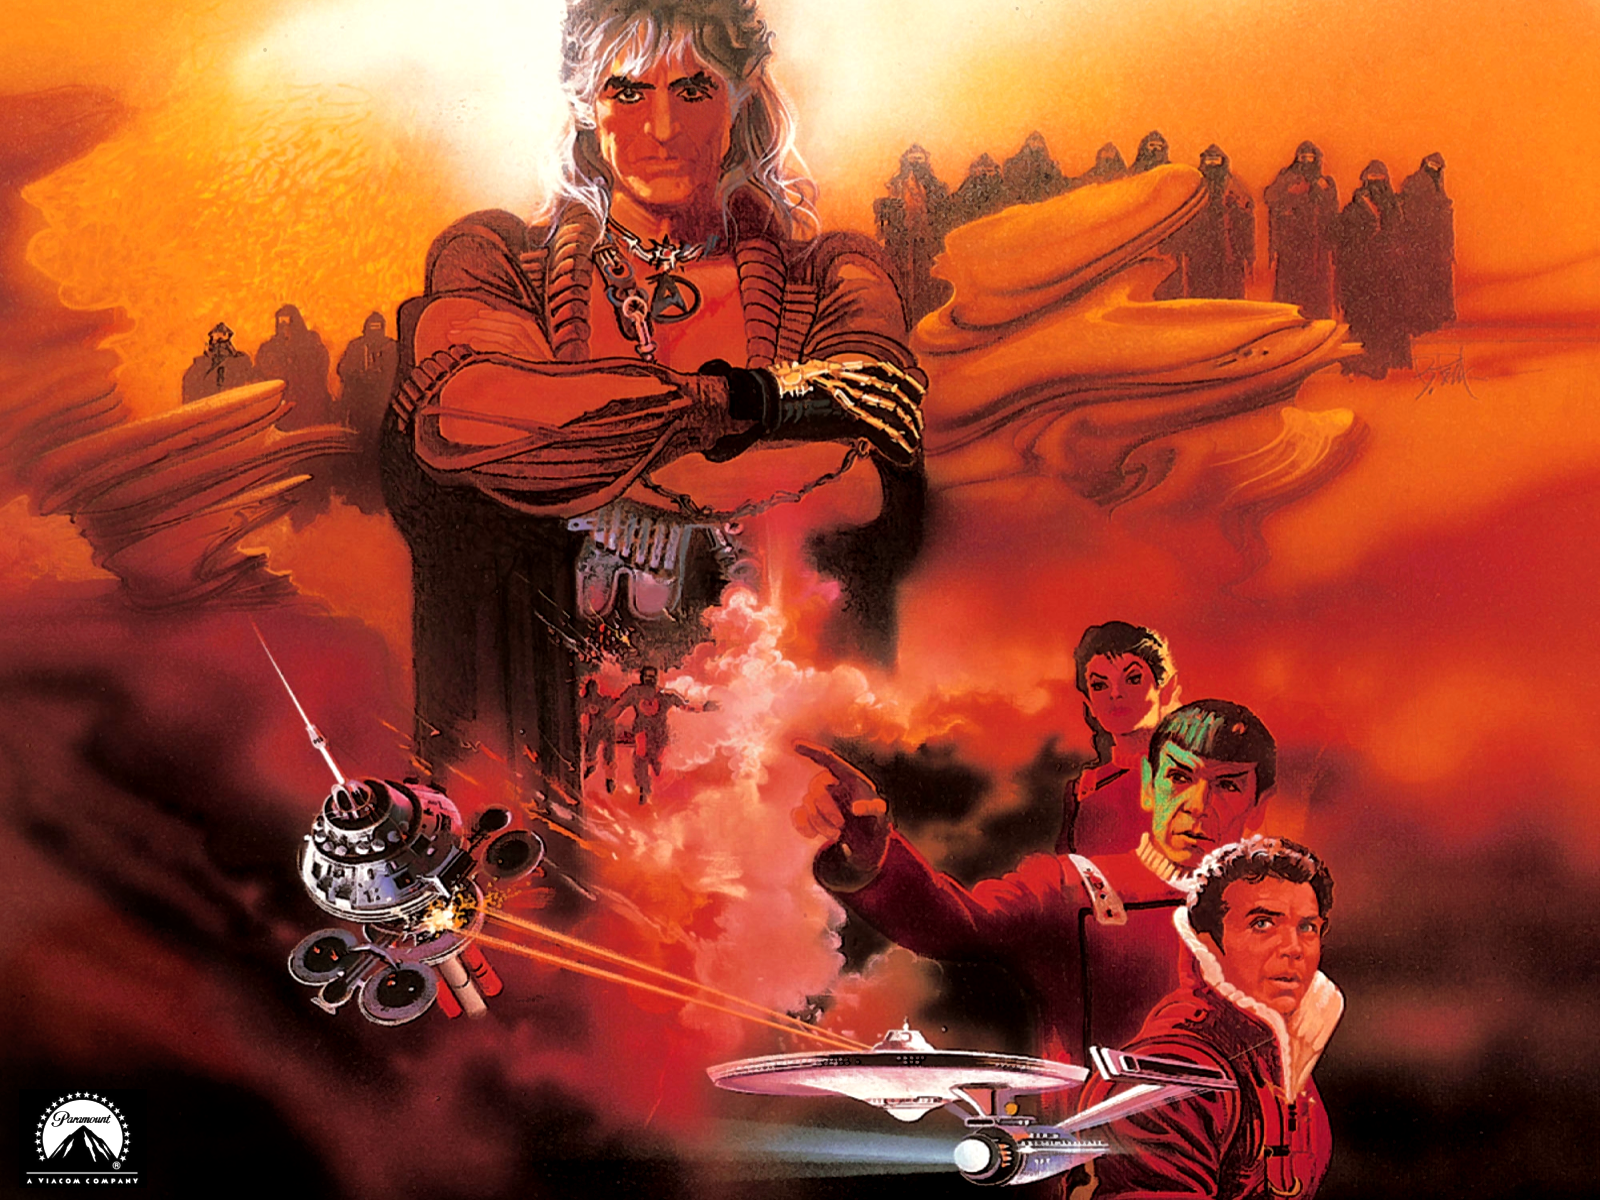 Star Trek II The Wrath of Khan Wallpapers and Background Images 1600x1200